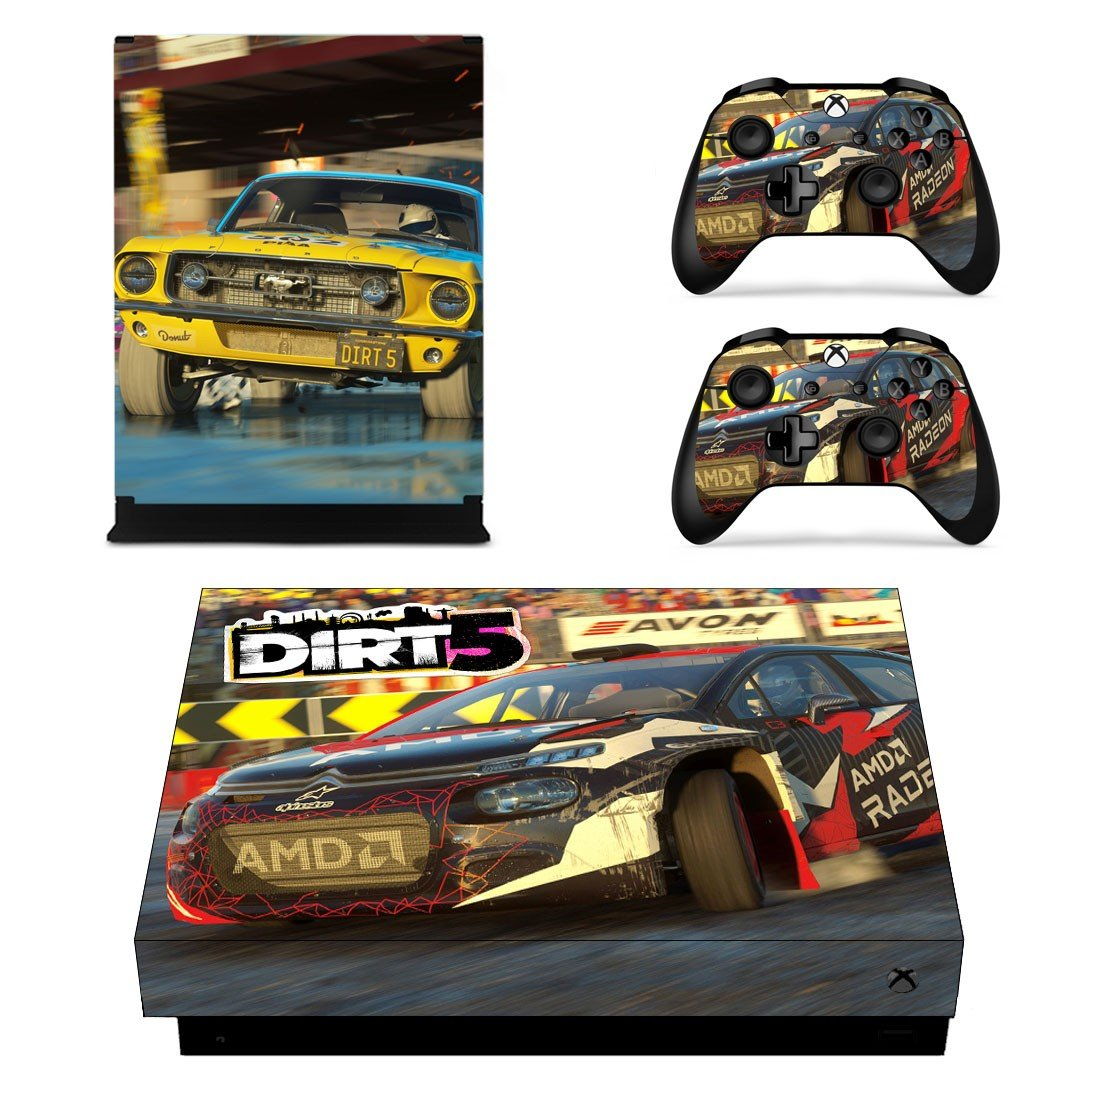 Dirt 5 decal skin for Xbox one X Console & Controllers